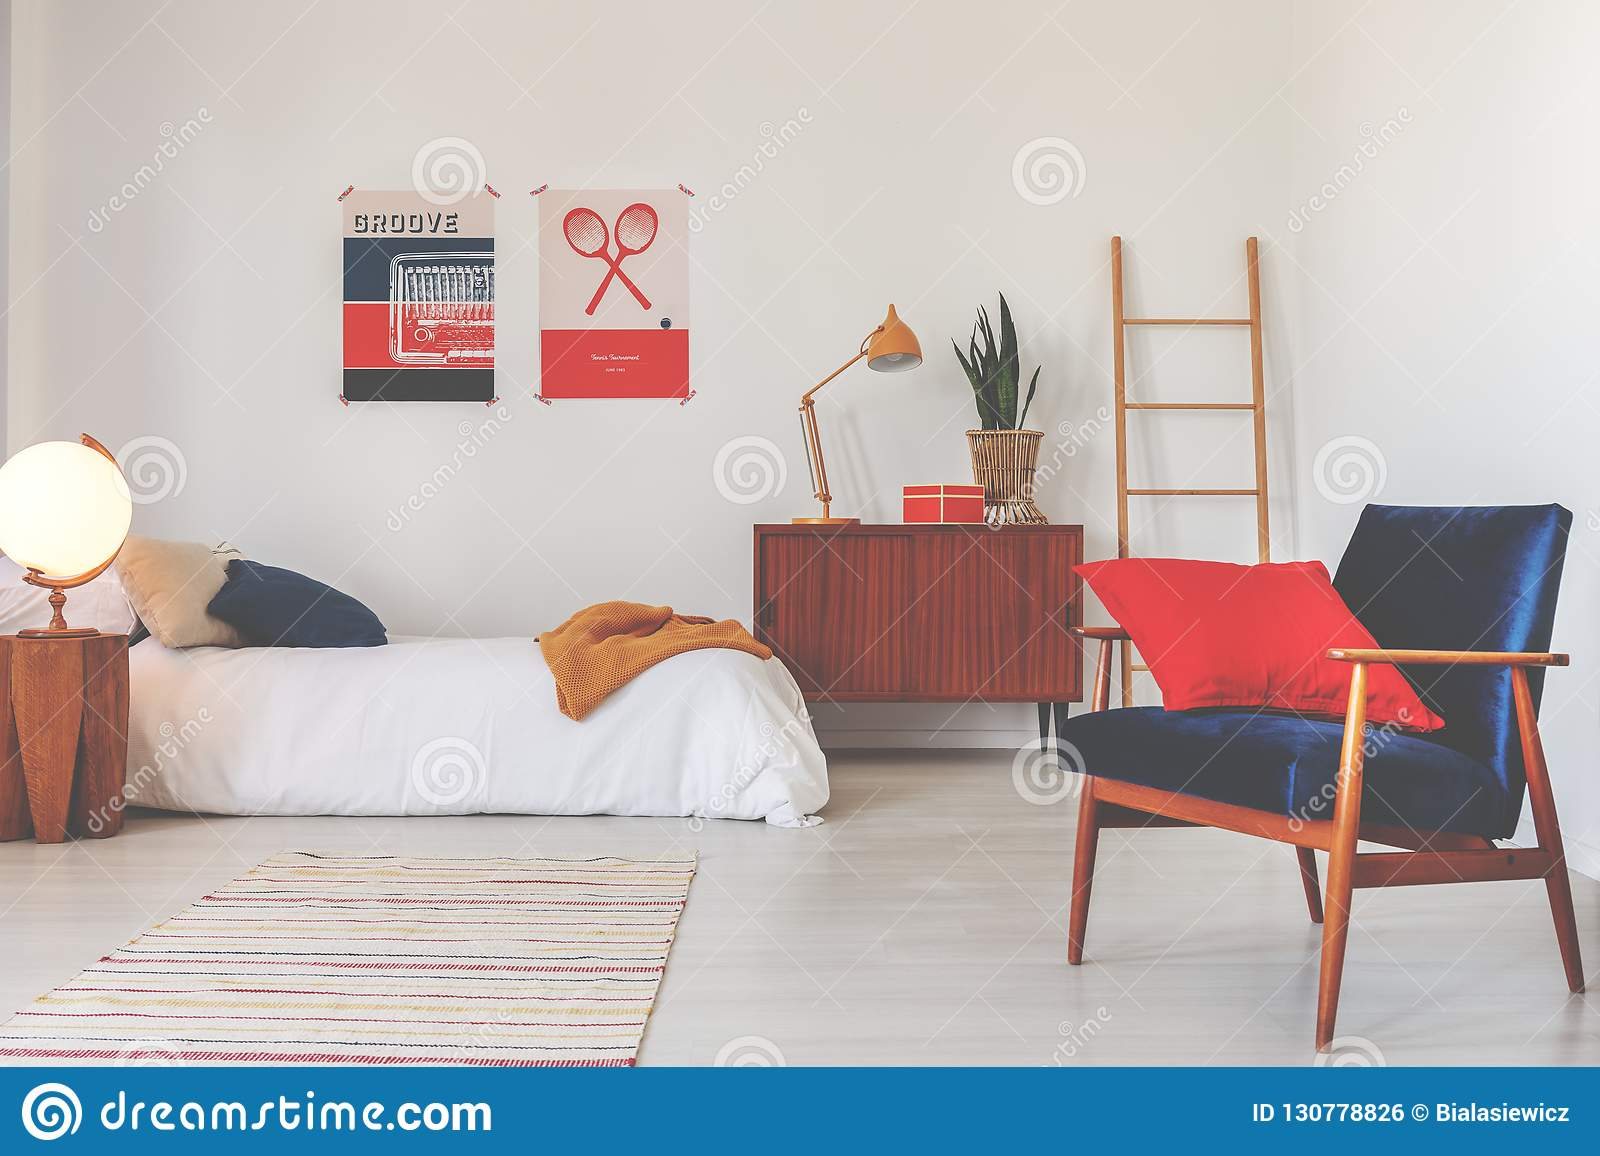 Red Pillow On Blue Armchair In White Bedroom Interior With ...